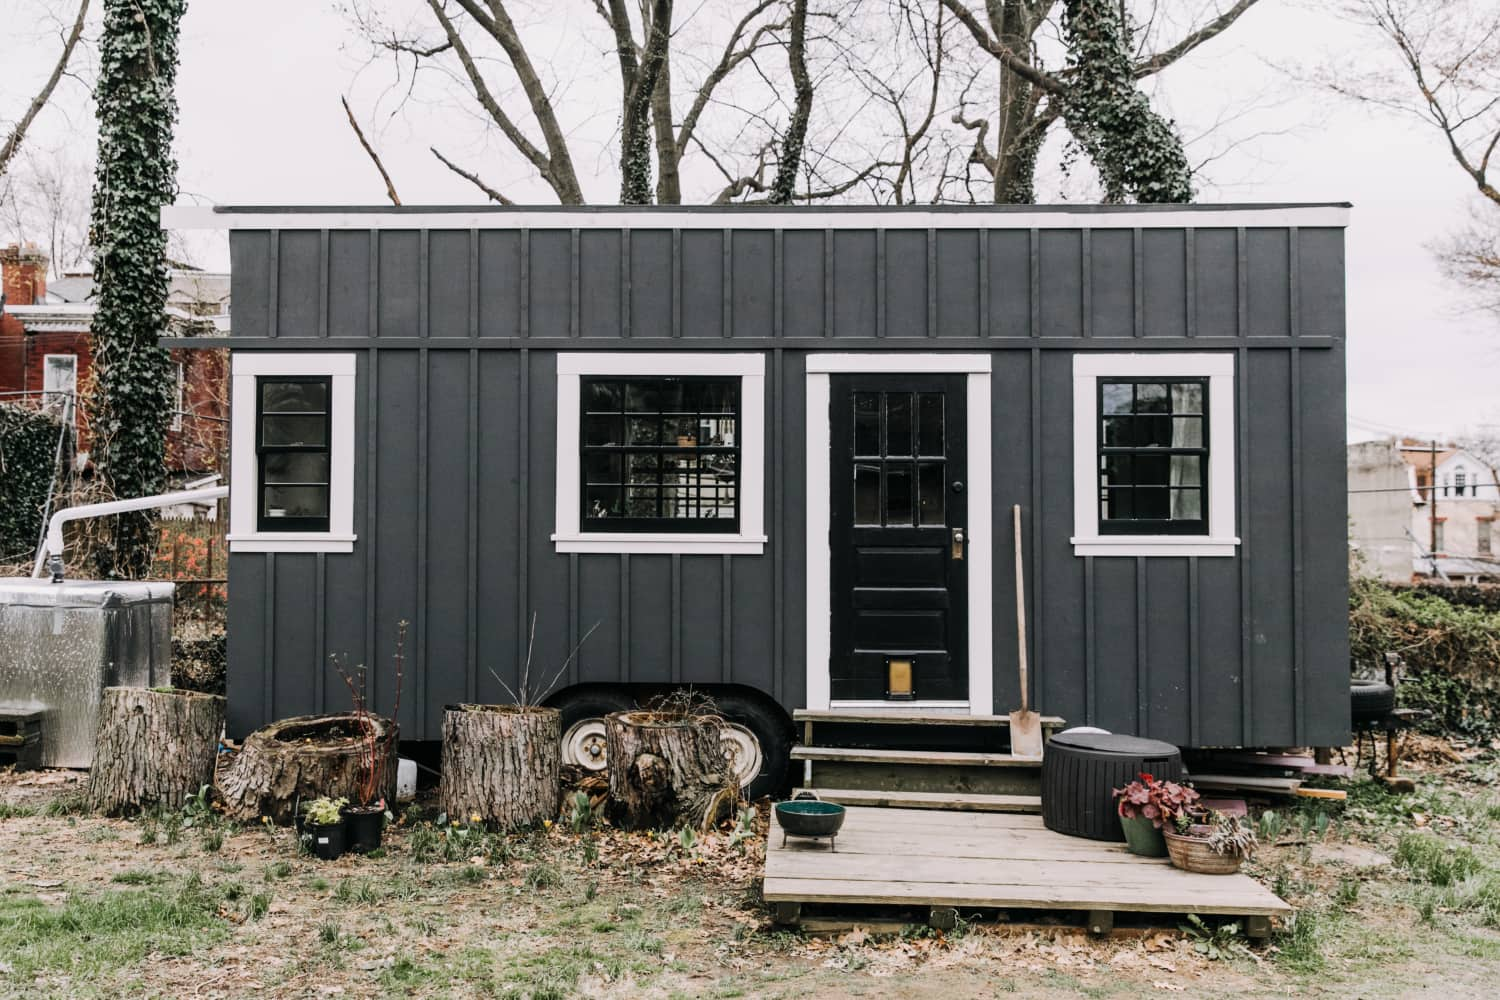 5 Great Places in the U.S. to Live in a Tiny House